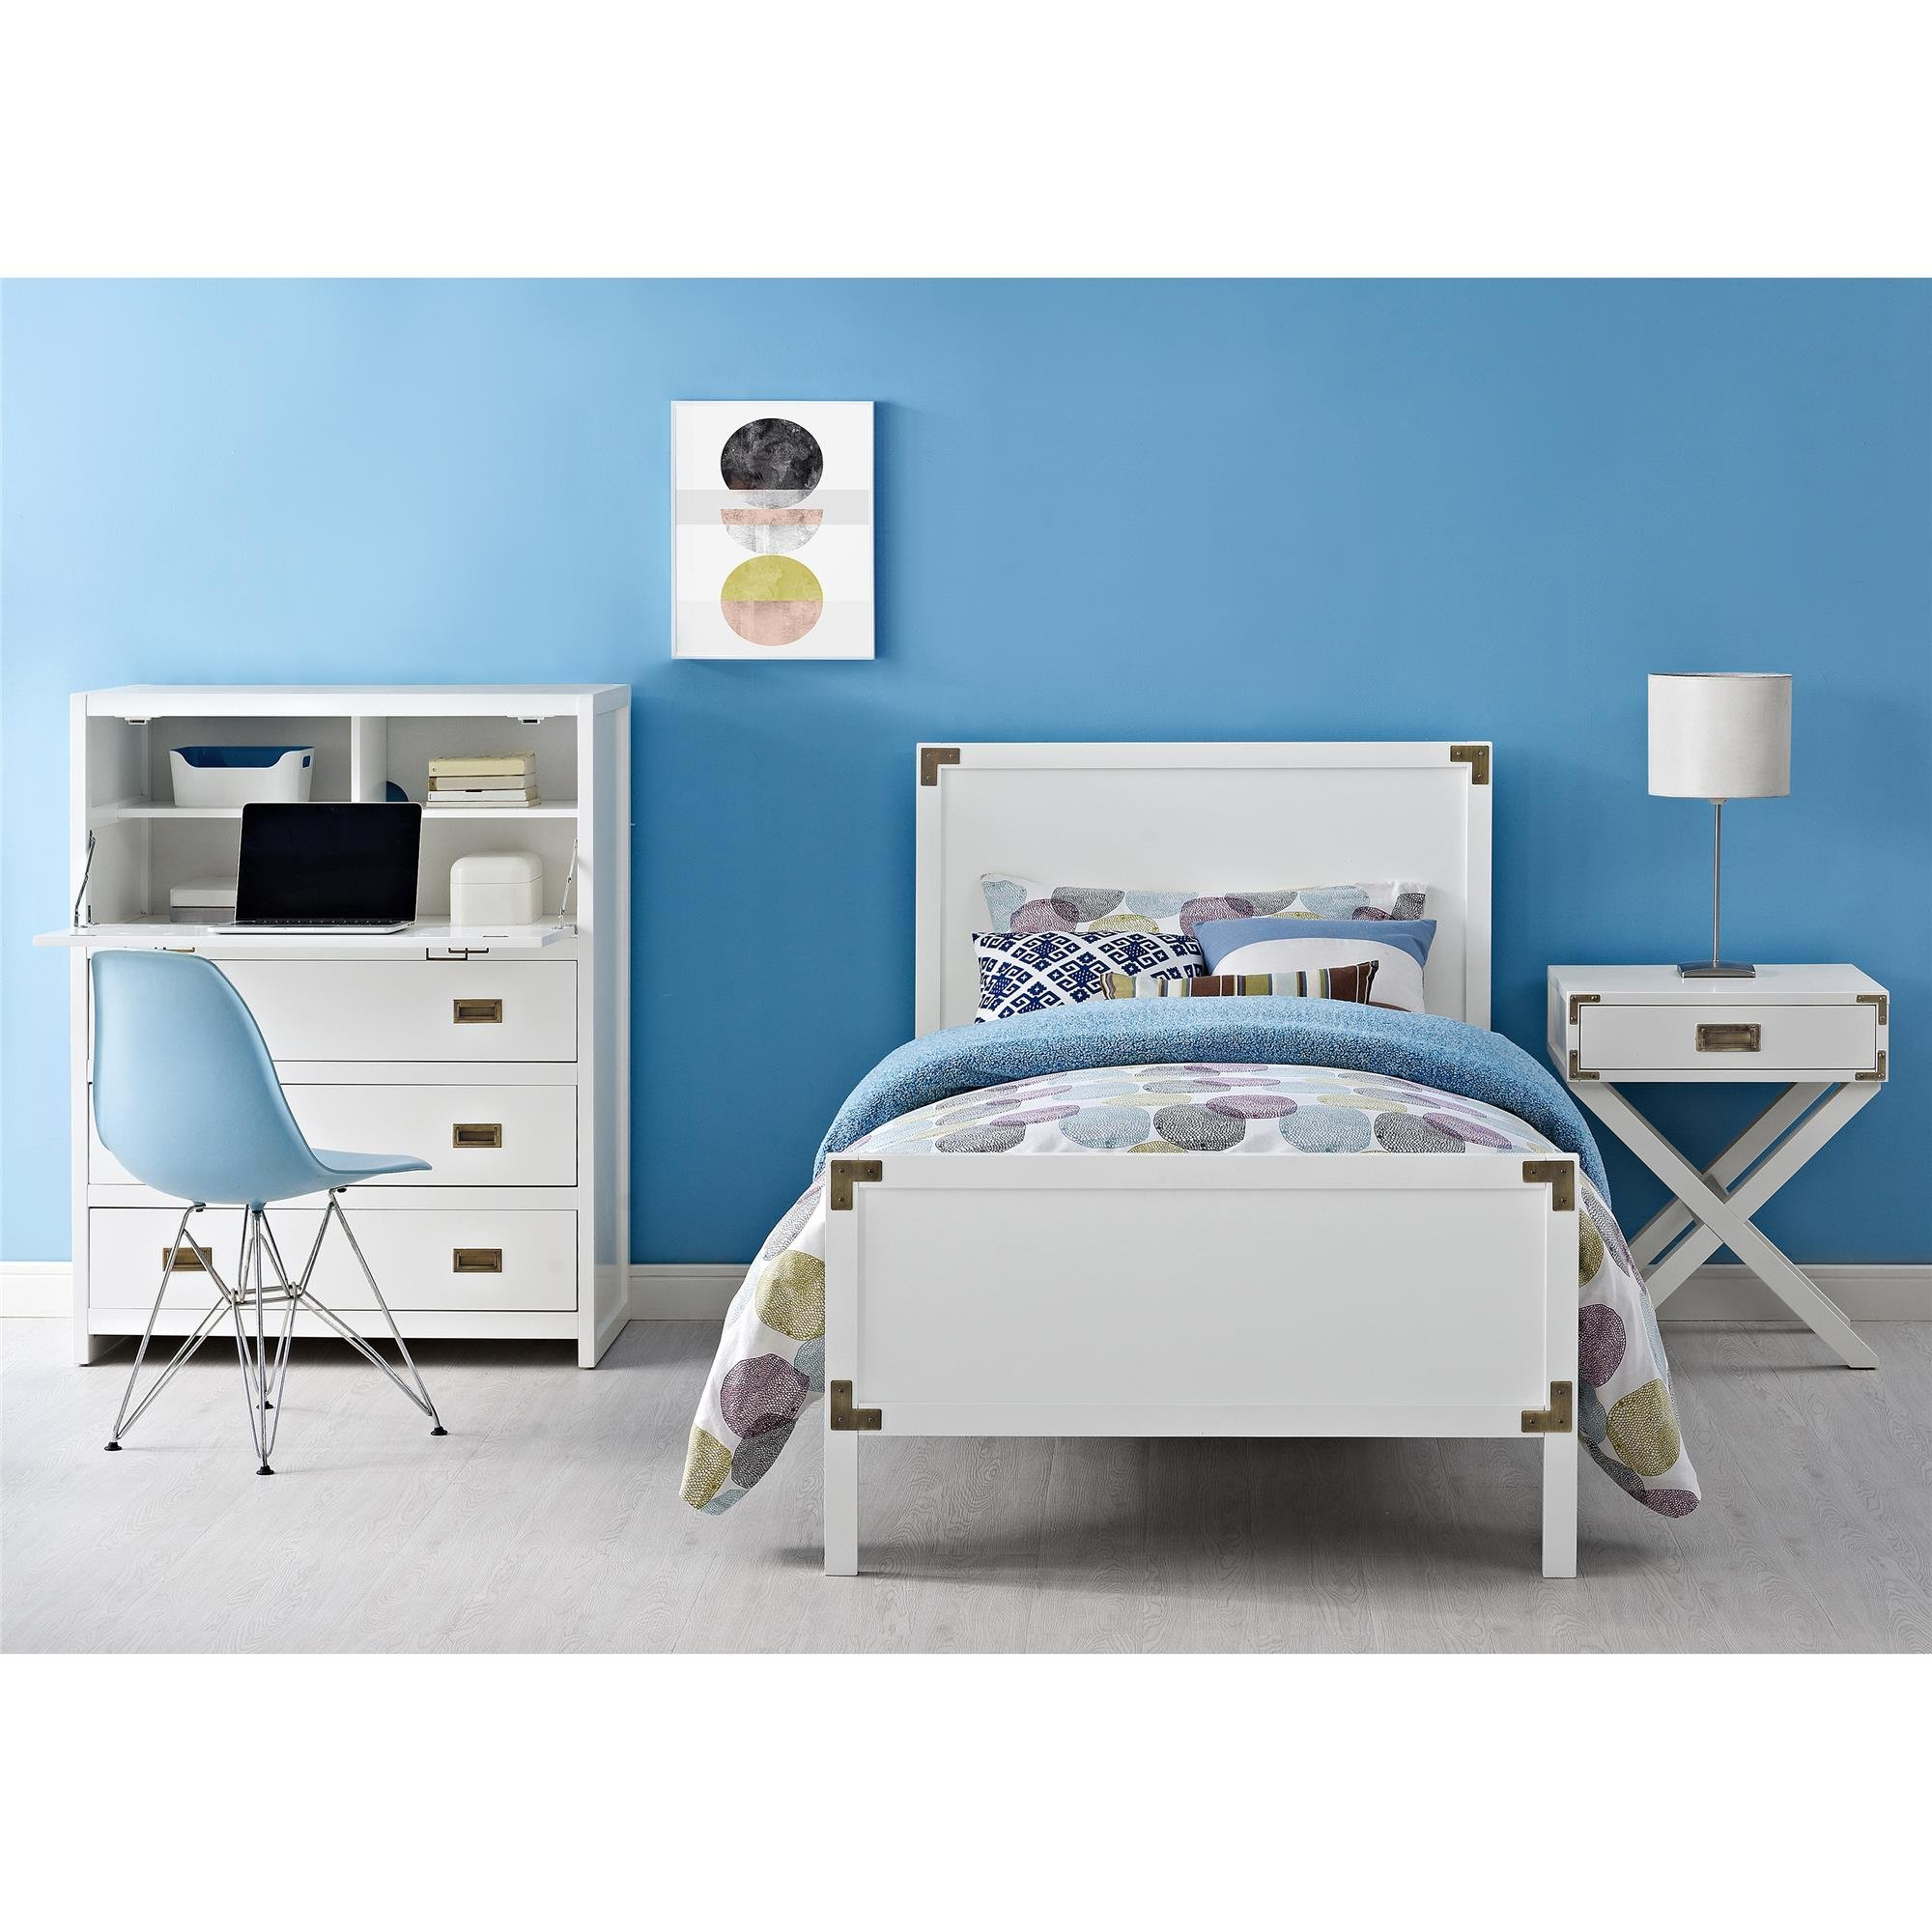 Baby Relax Miles Nightstand, White by Baby Relax (Image #7)